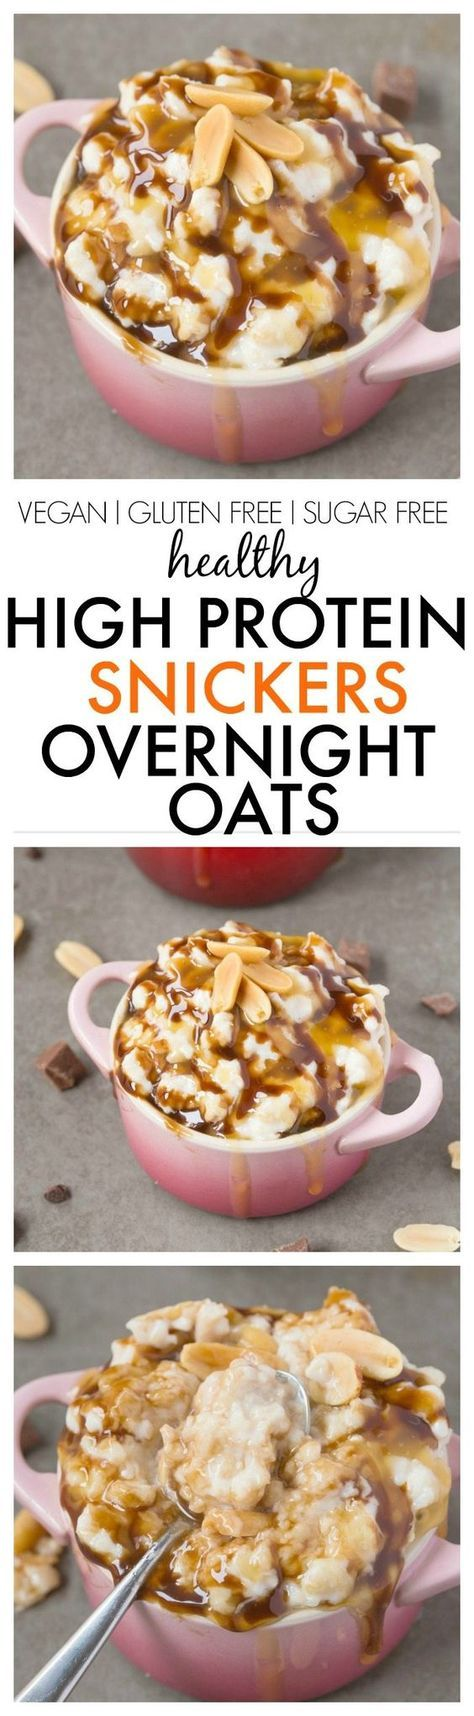 Healthy High Protein Snickers Overnight Oats- Easy, delicious and totally dessert for breakfast but with NO sugar or nasties! It tastes just like a snickers bar! {vegan, gluten free, sugar free recipe}- http://thebigmansworld.com